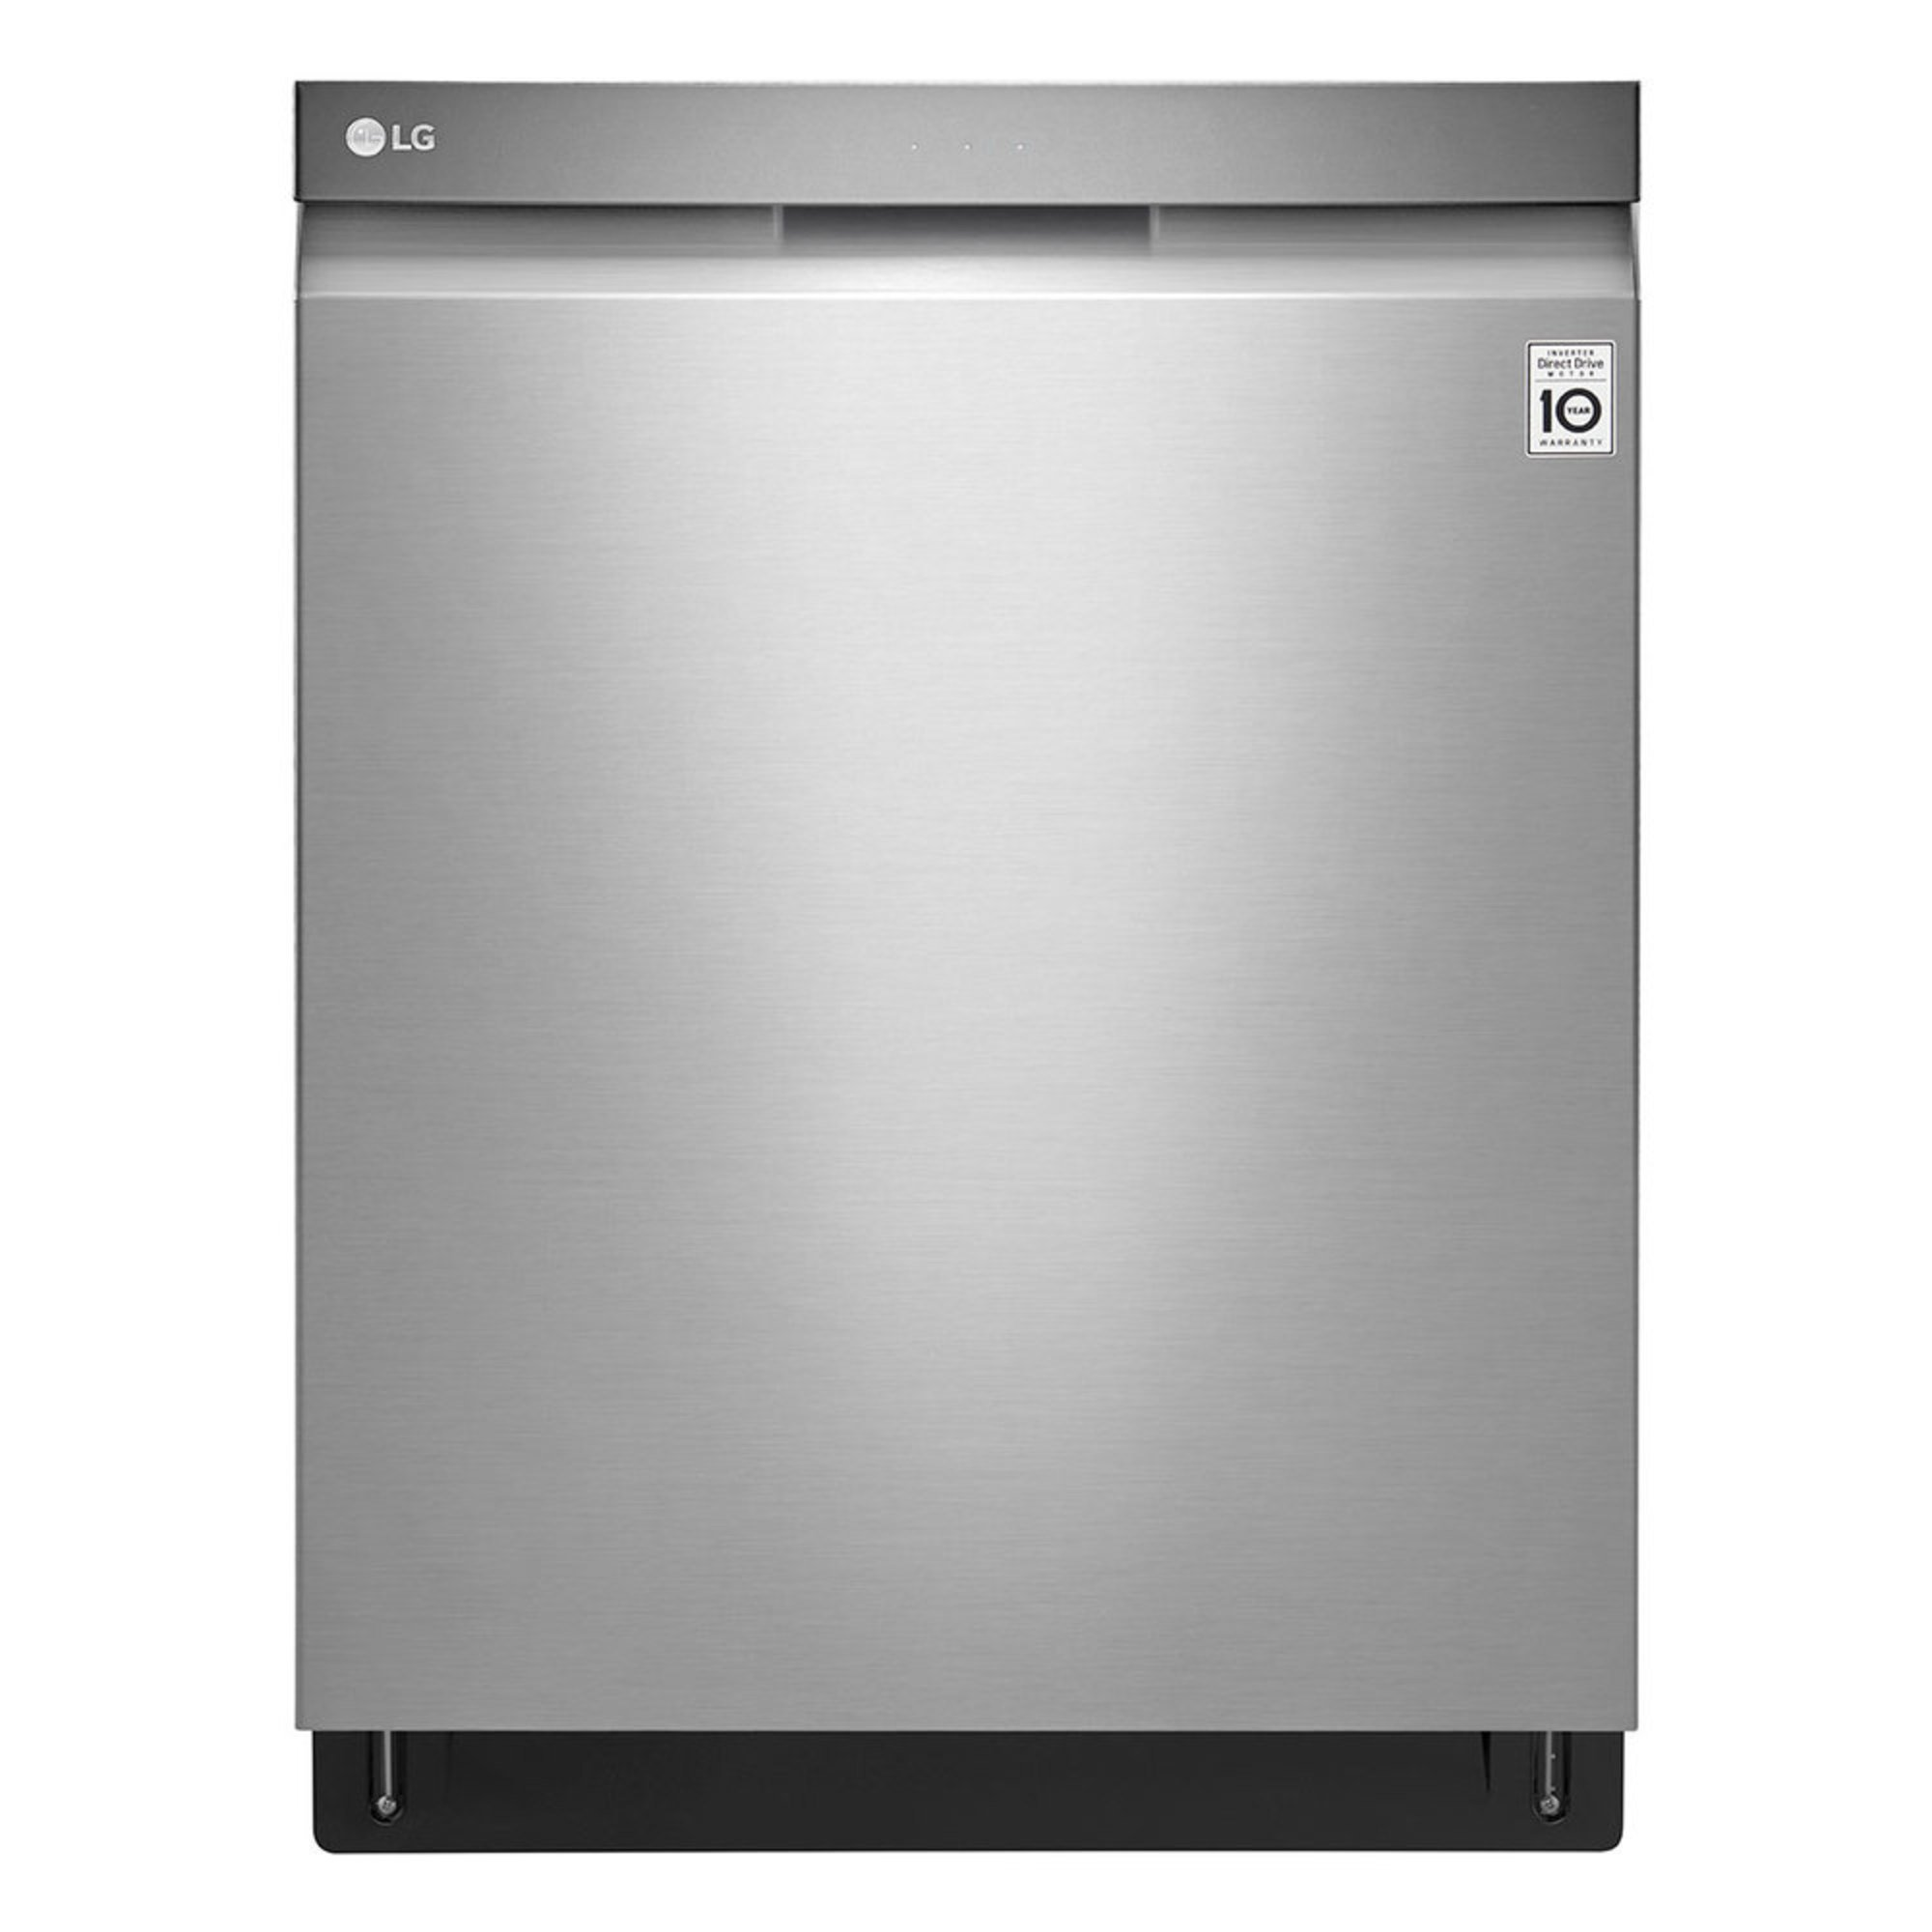 lg 24quot top control dishwasher with pocket handle